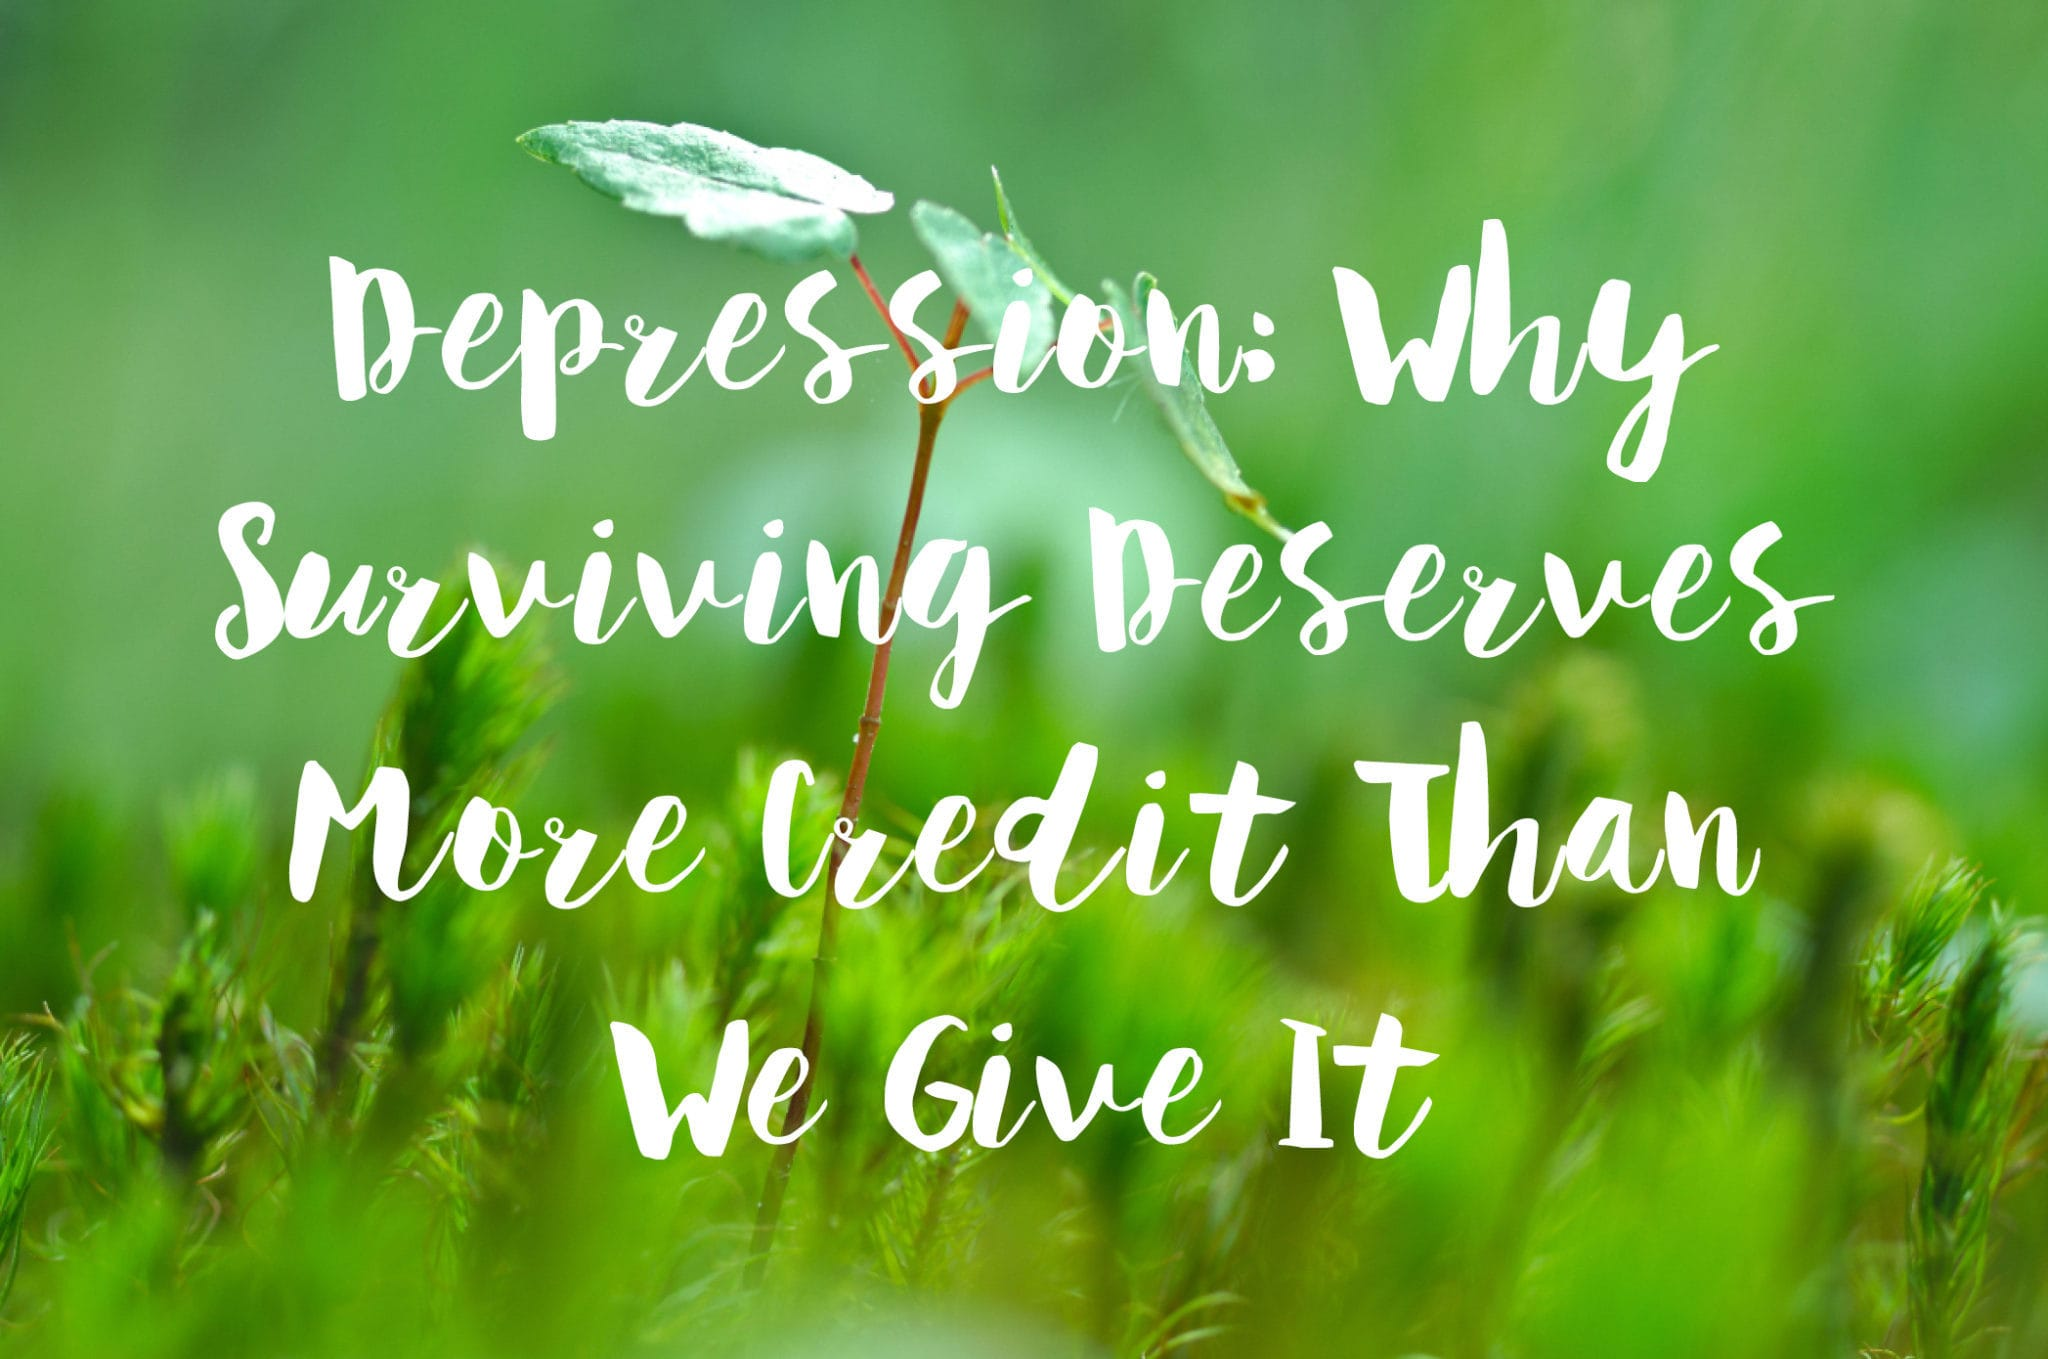 Depression: Why Surviving Deserves More Credit Than We Give It